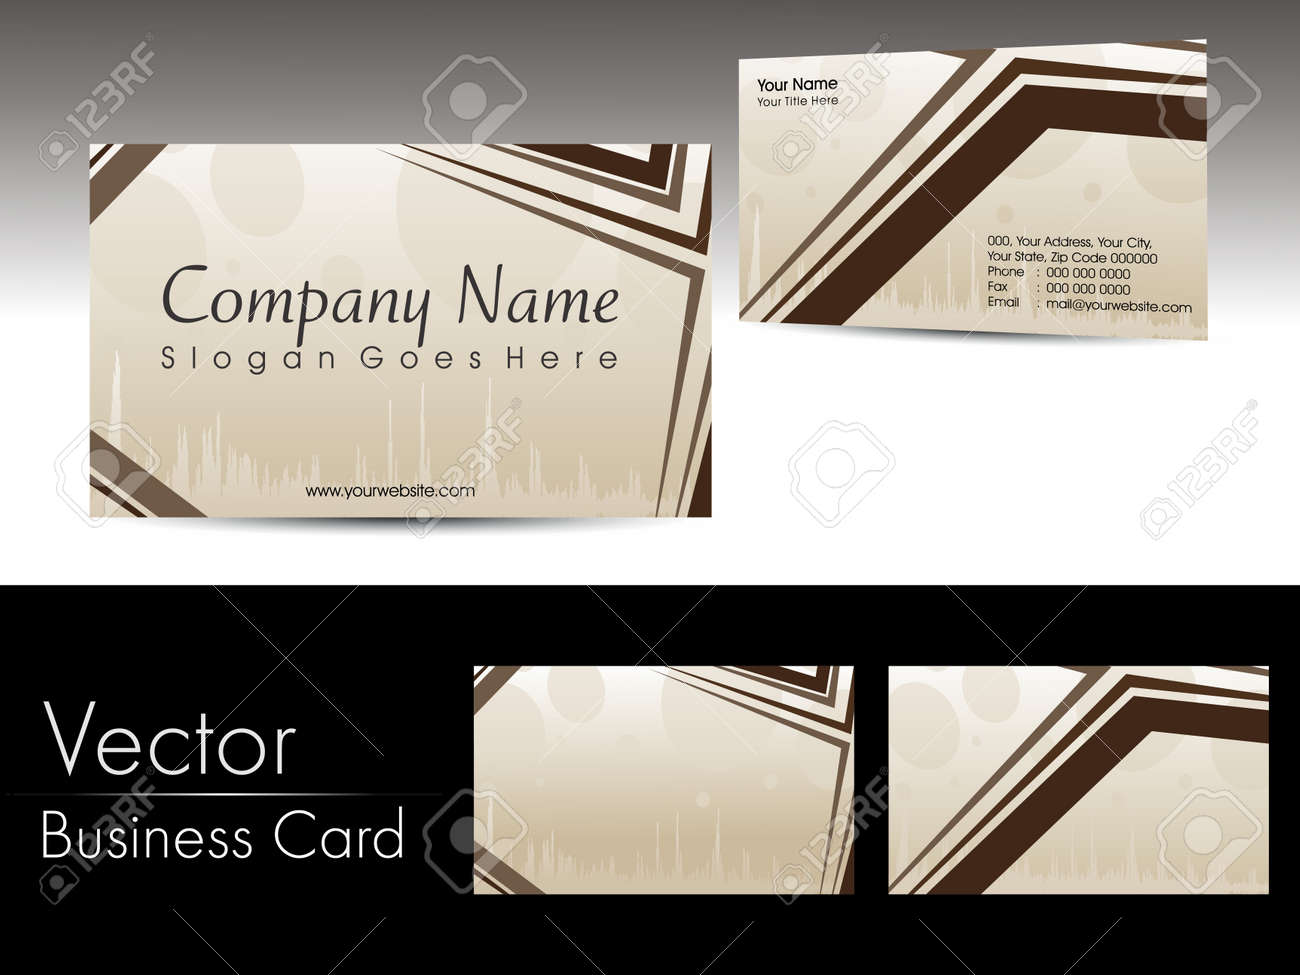 Abstract artwork design vector corporate business cards royalty free abstract artwork design vector corporate business cards stock vector 11895156 colourmoves